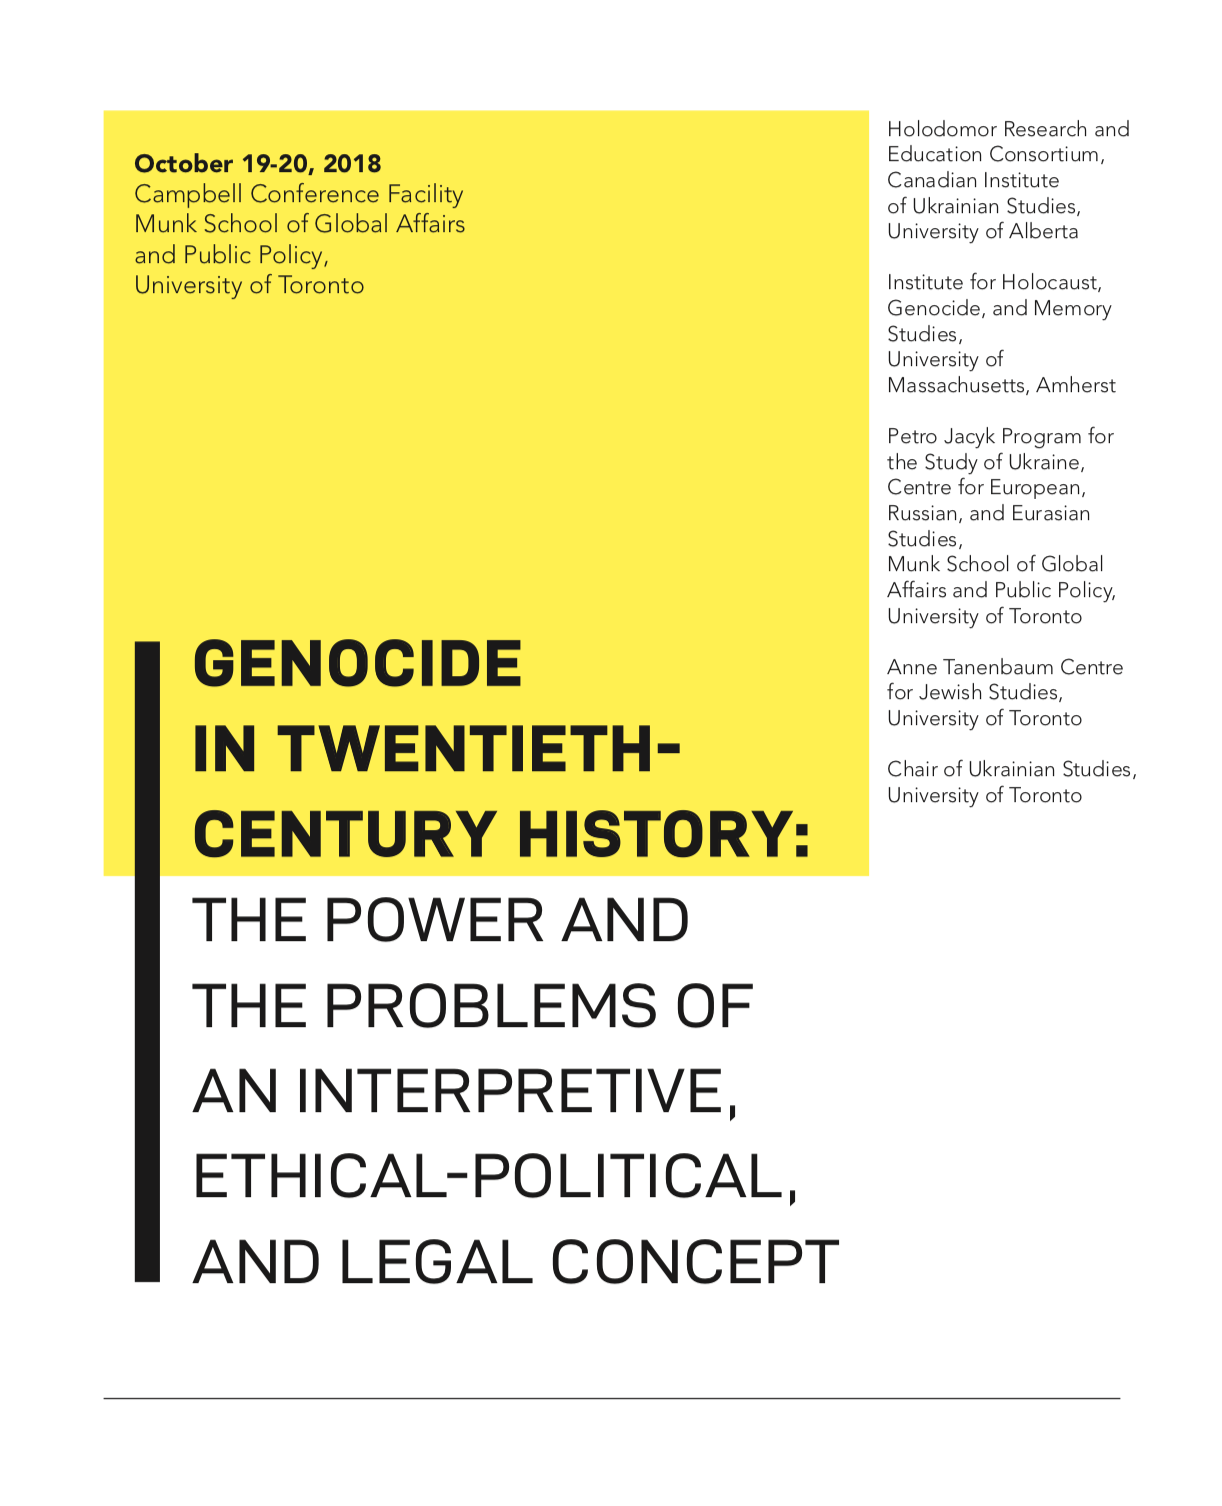 Genocide in Twentieth-Century History: The Power and the Problems of an Interpretive, Ethical-Political, and Legal Concept